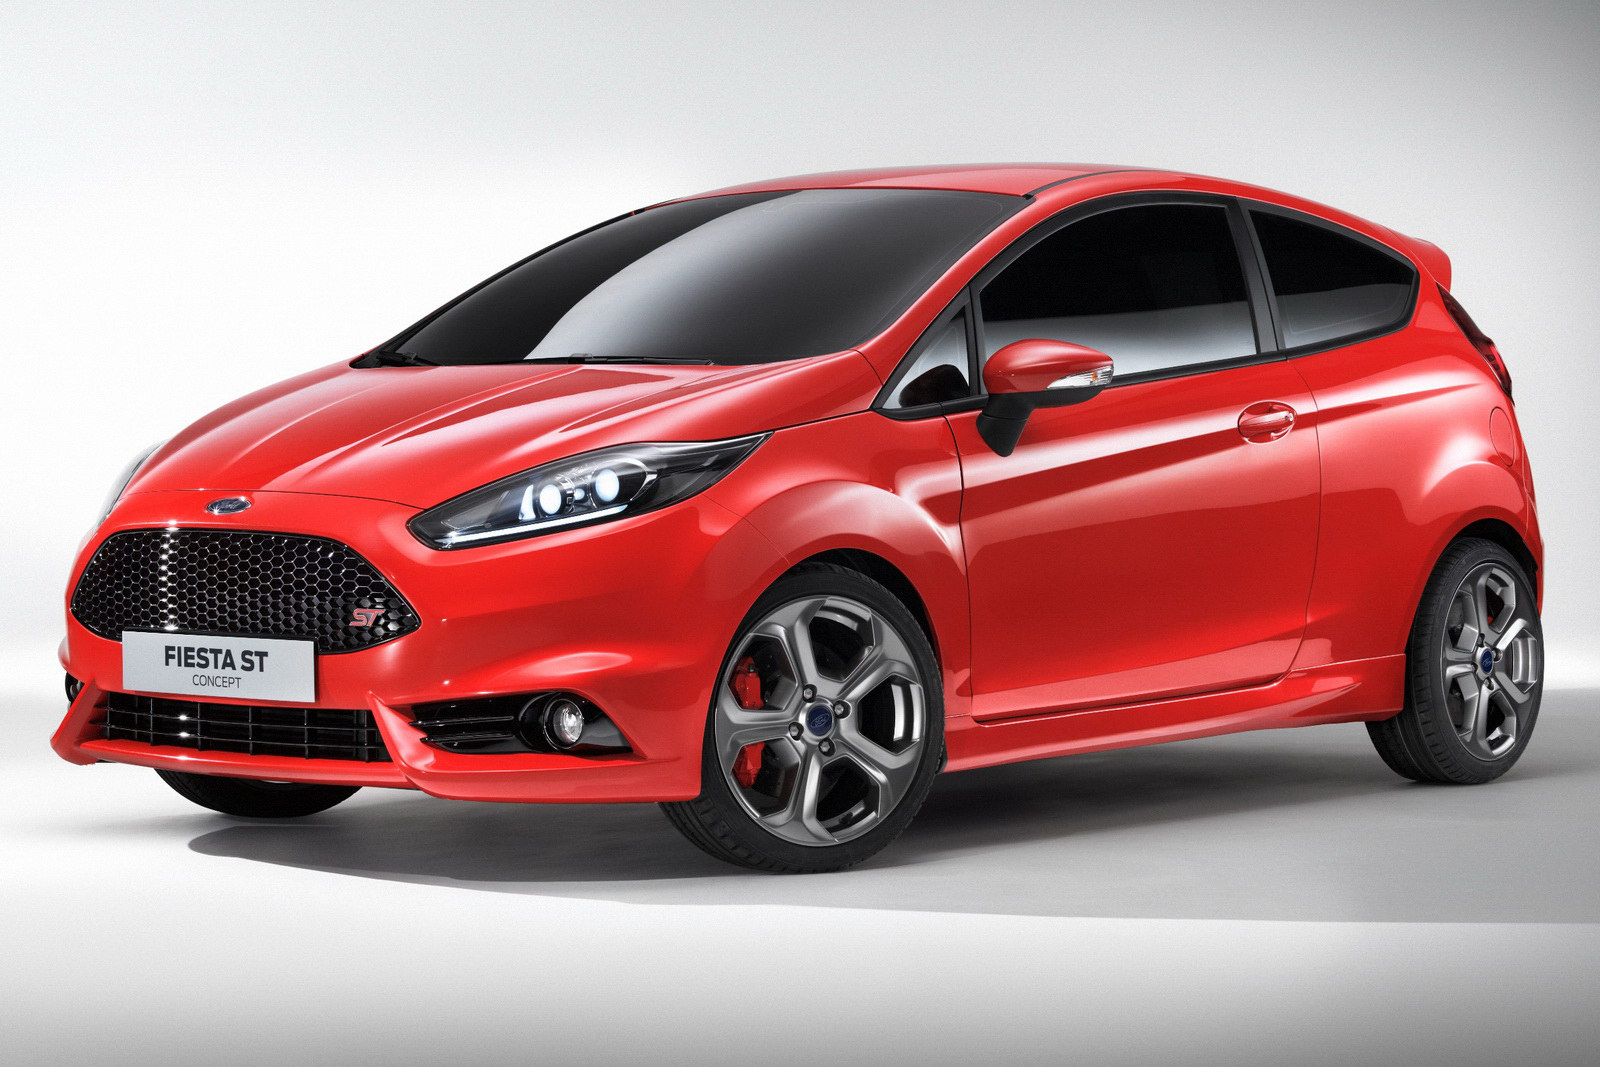 new ford fiesta st confirmed for geneva autoevolution. Black Bedroom Furniture Sets. Home Design Ideas